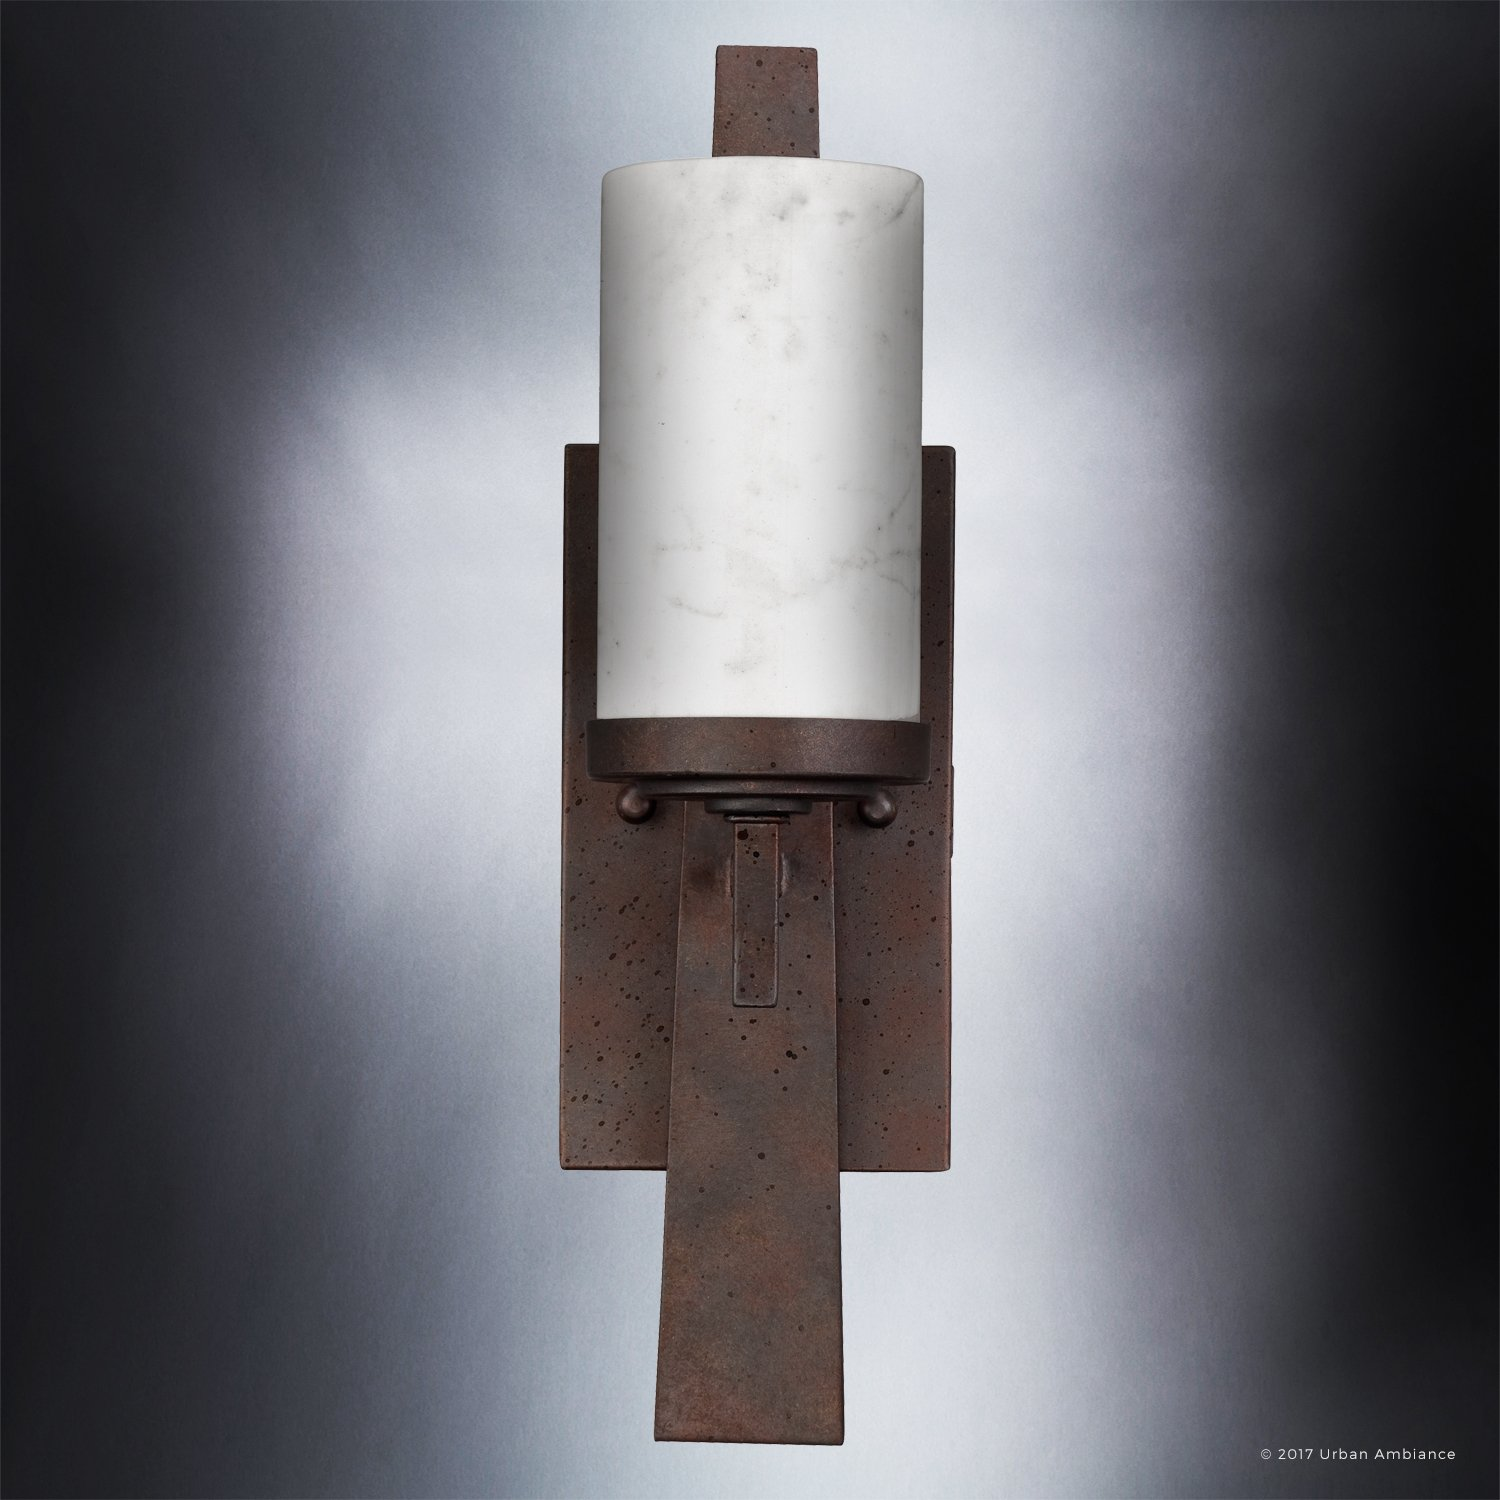 Luxury Rustic Indoor Wall Light, Medium Size: 16''H x 4.5''W, with Craftsman Style Elements, Banded Wrought Iron Design, Forged Iron Finish and White Onyx Stone Shades, UQL2420 by Urban Ambiance by Urban Ambiance (Image #4)